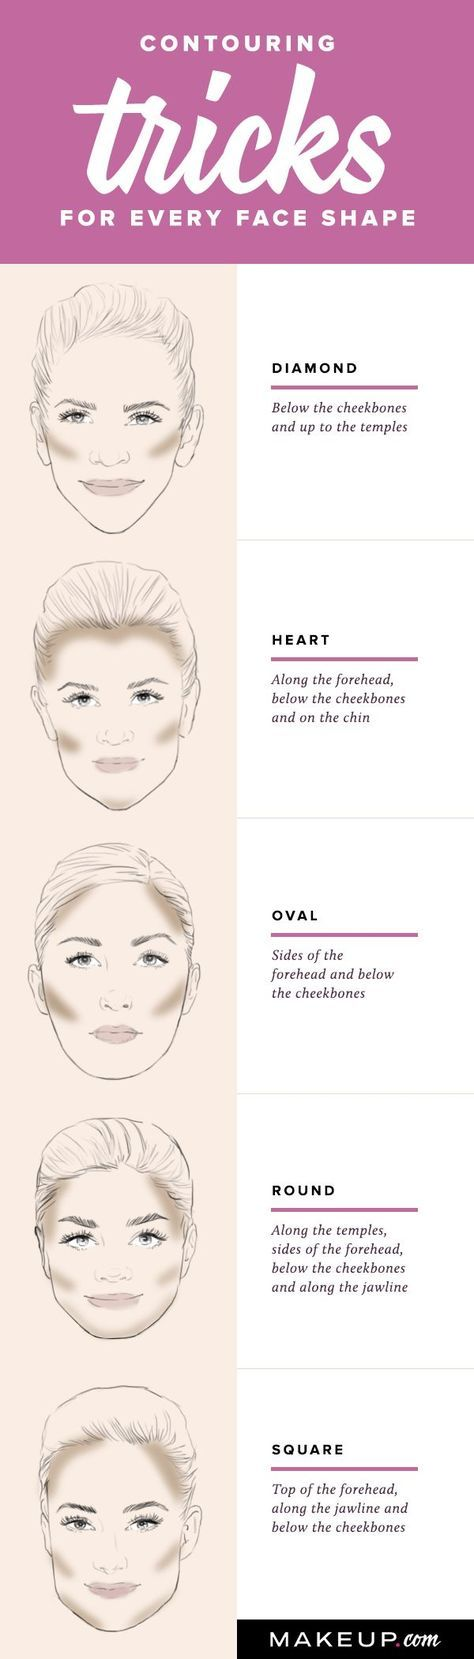 Contouring and highlighting is the best way to make your facial features stand out. Easy conturing tutorials don't come around very often, but our DIY tutorial is the best guide you'll find for making your makeup and beauty game its very best for your face shape.: